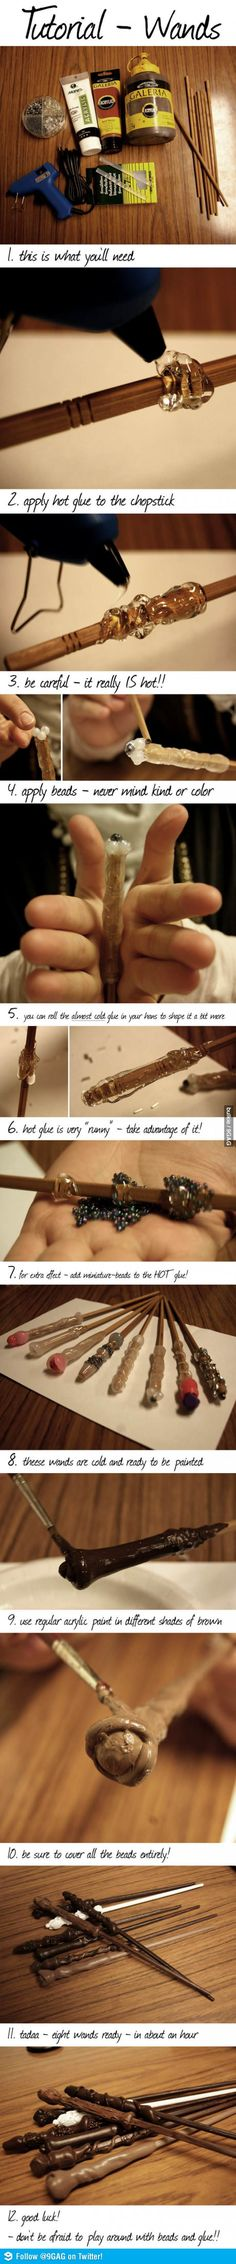 Harry Potter wands.....